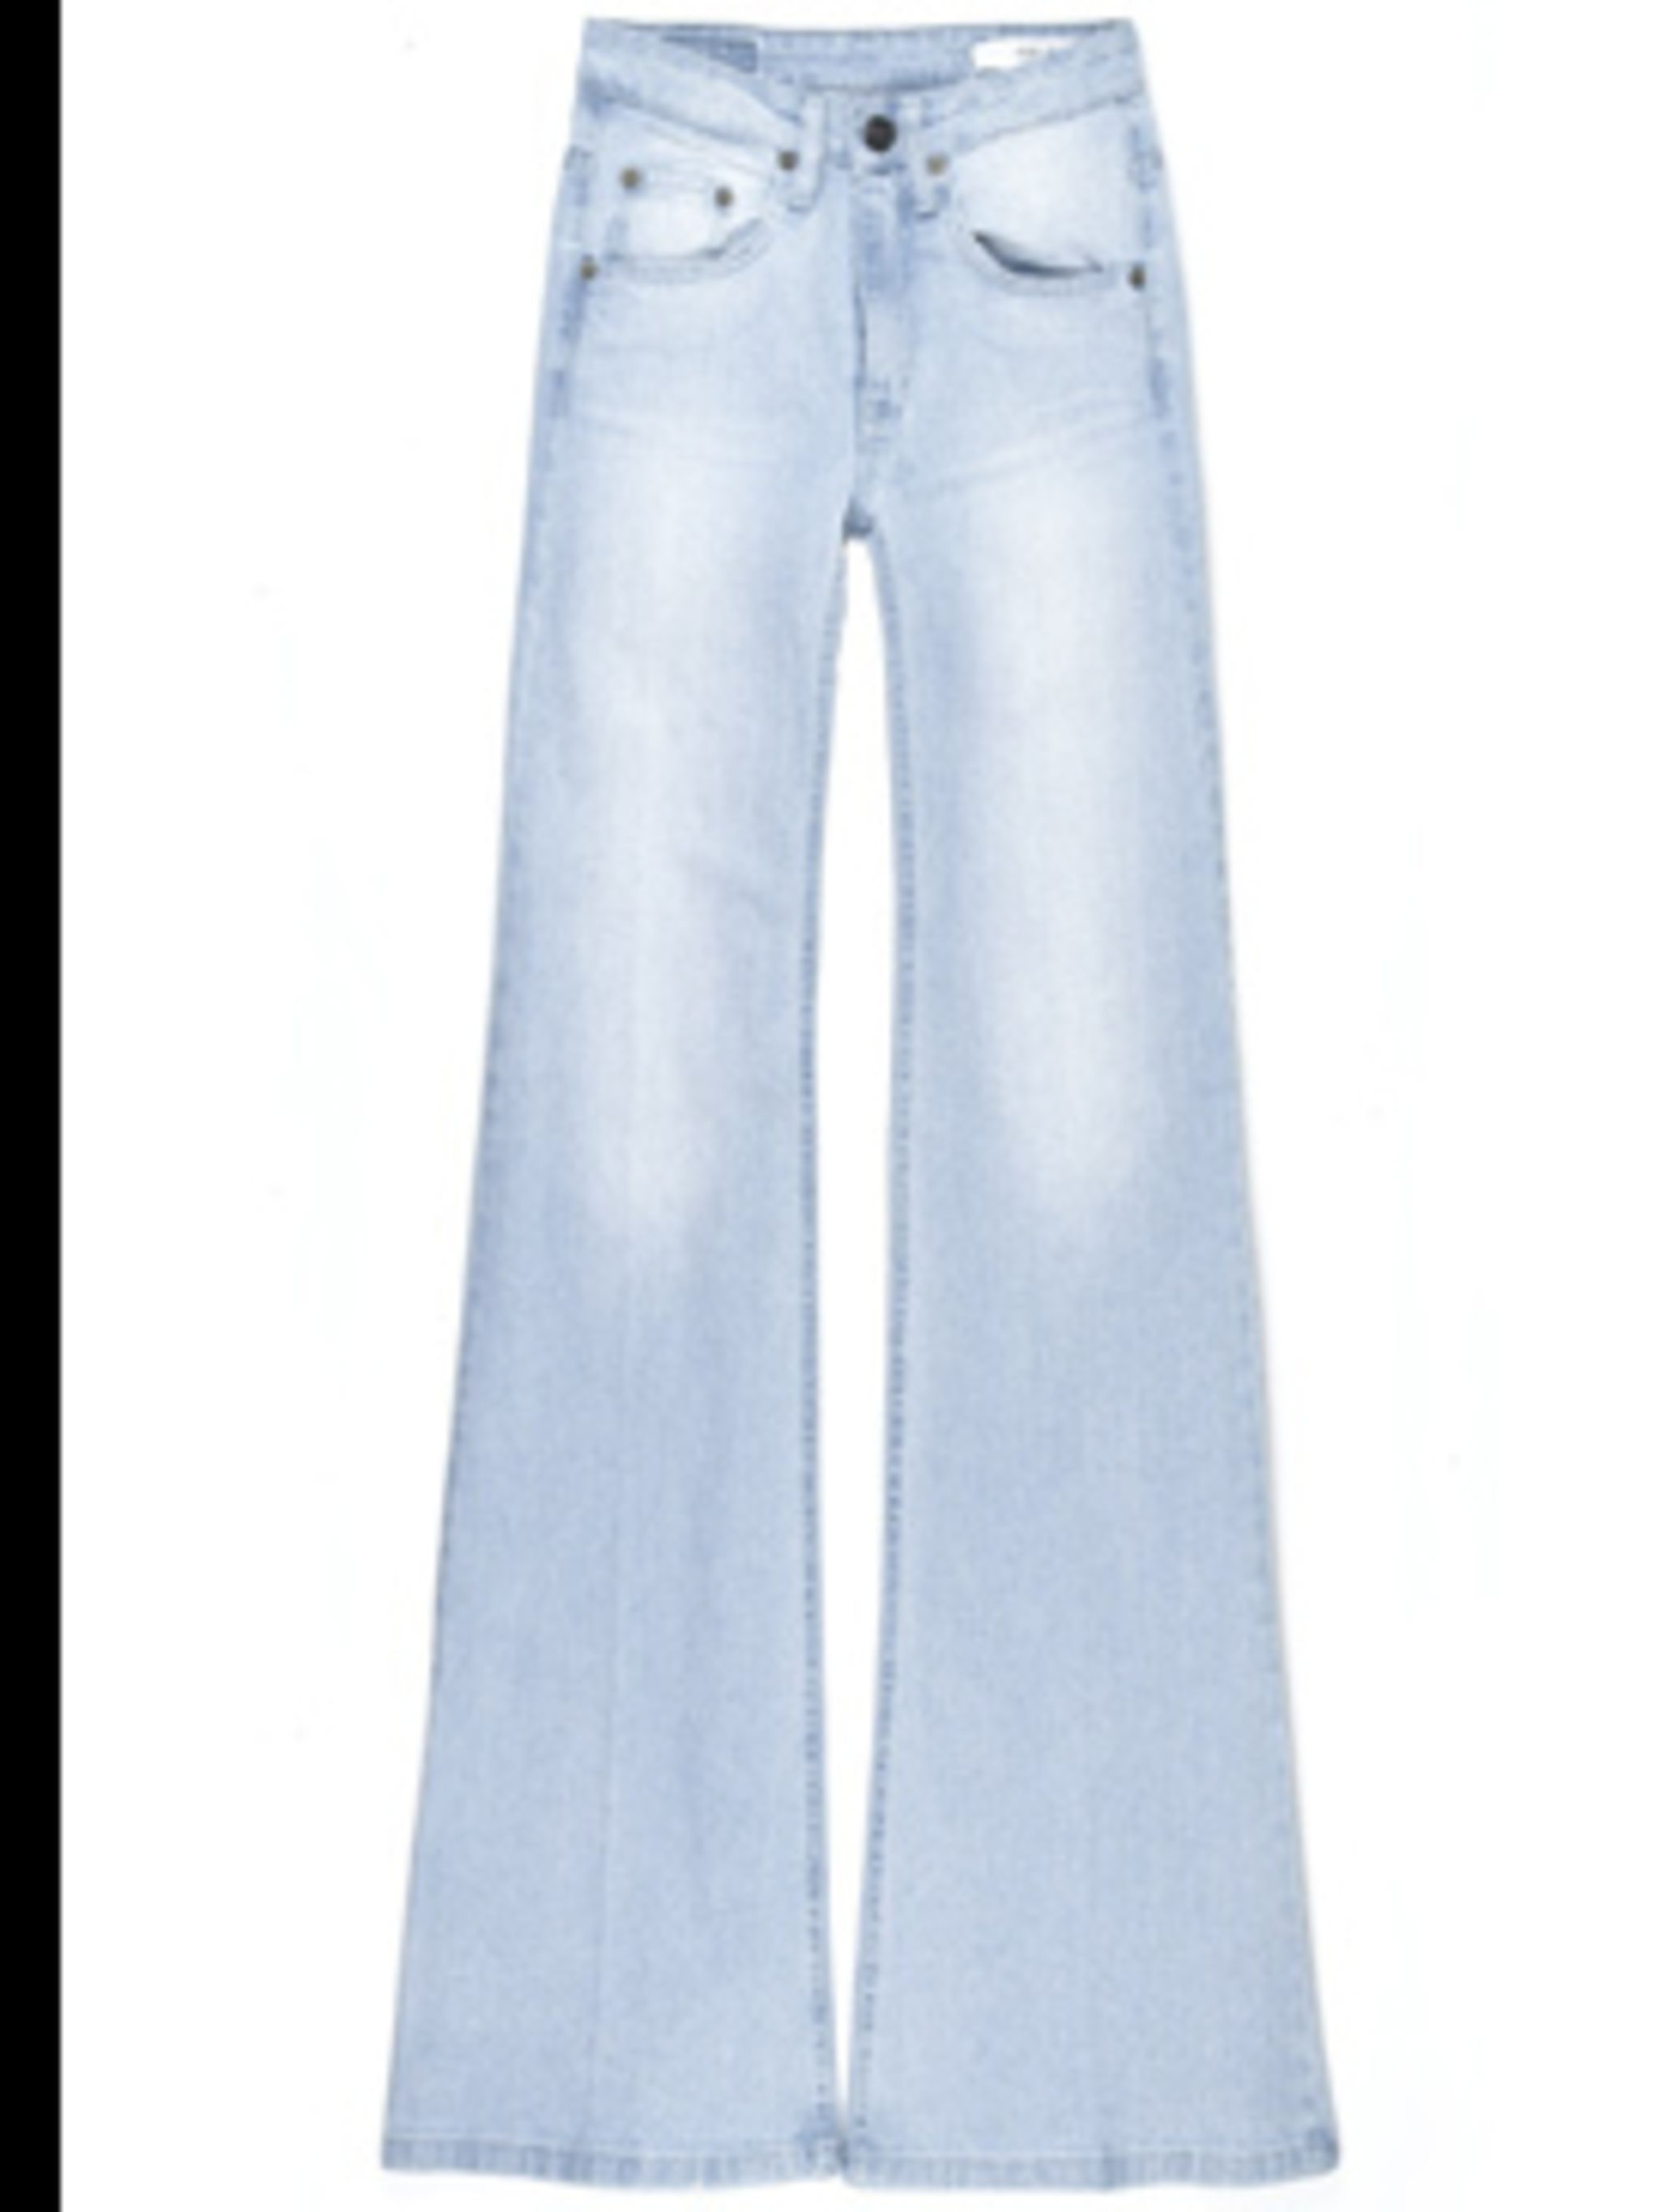 <p>'Colbert' flared jeans £175.50 by 18th Amendment, for stockists call 0207 225 3816 </p>